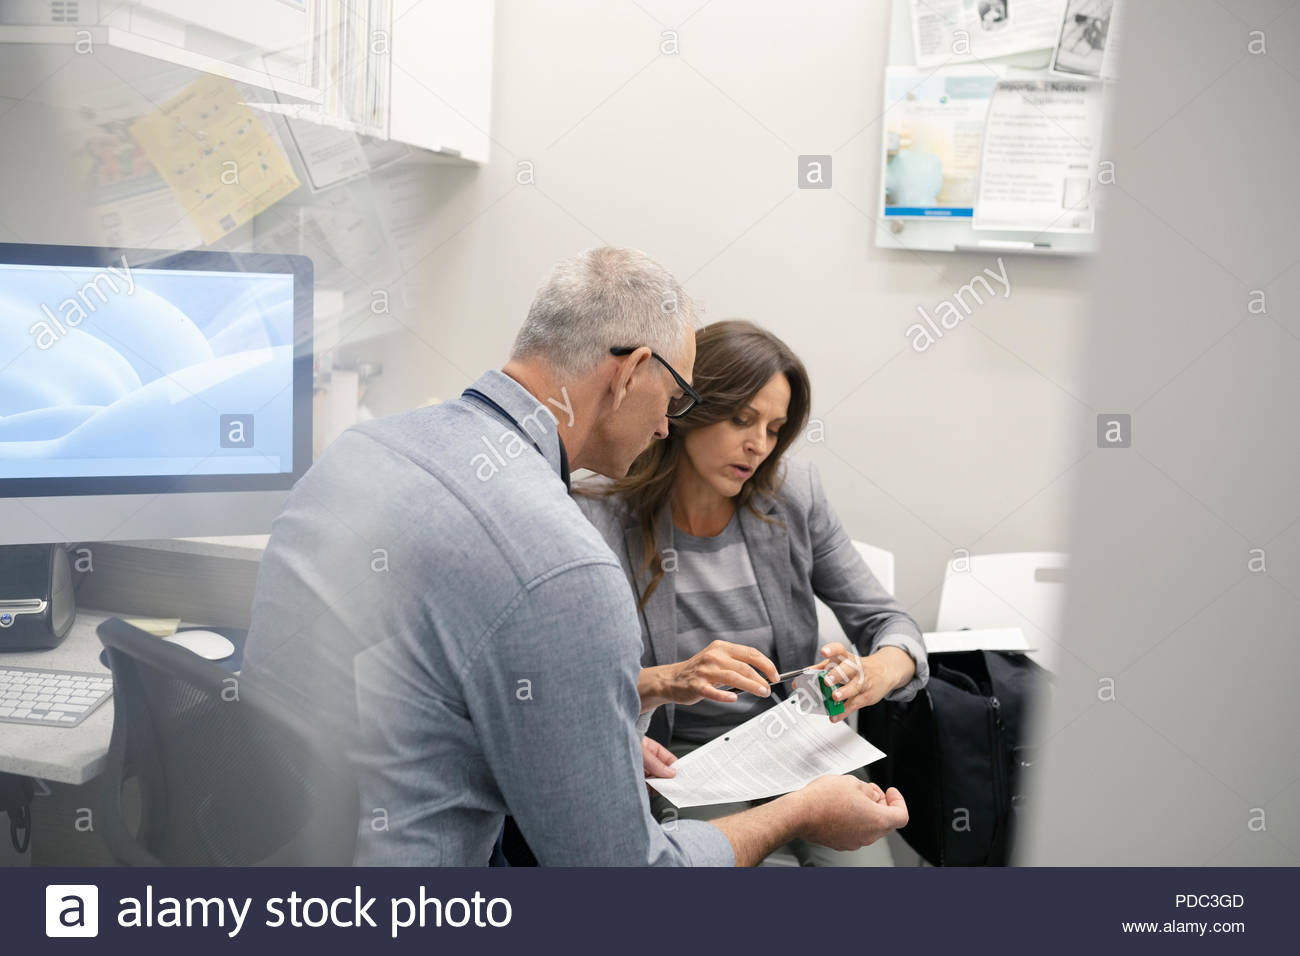 Male doctor and female patient discussing medication in clinic office Stock Photo